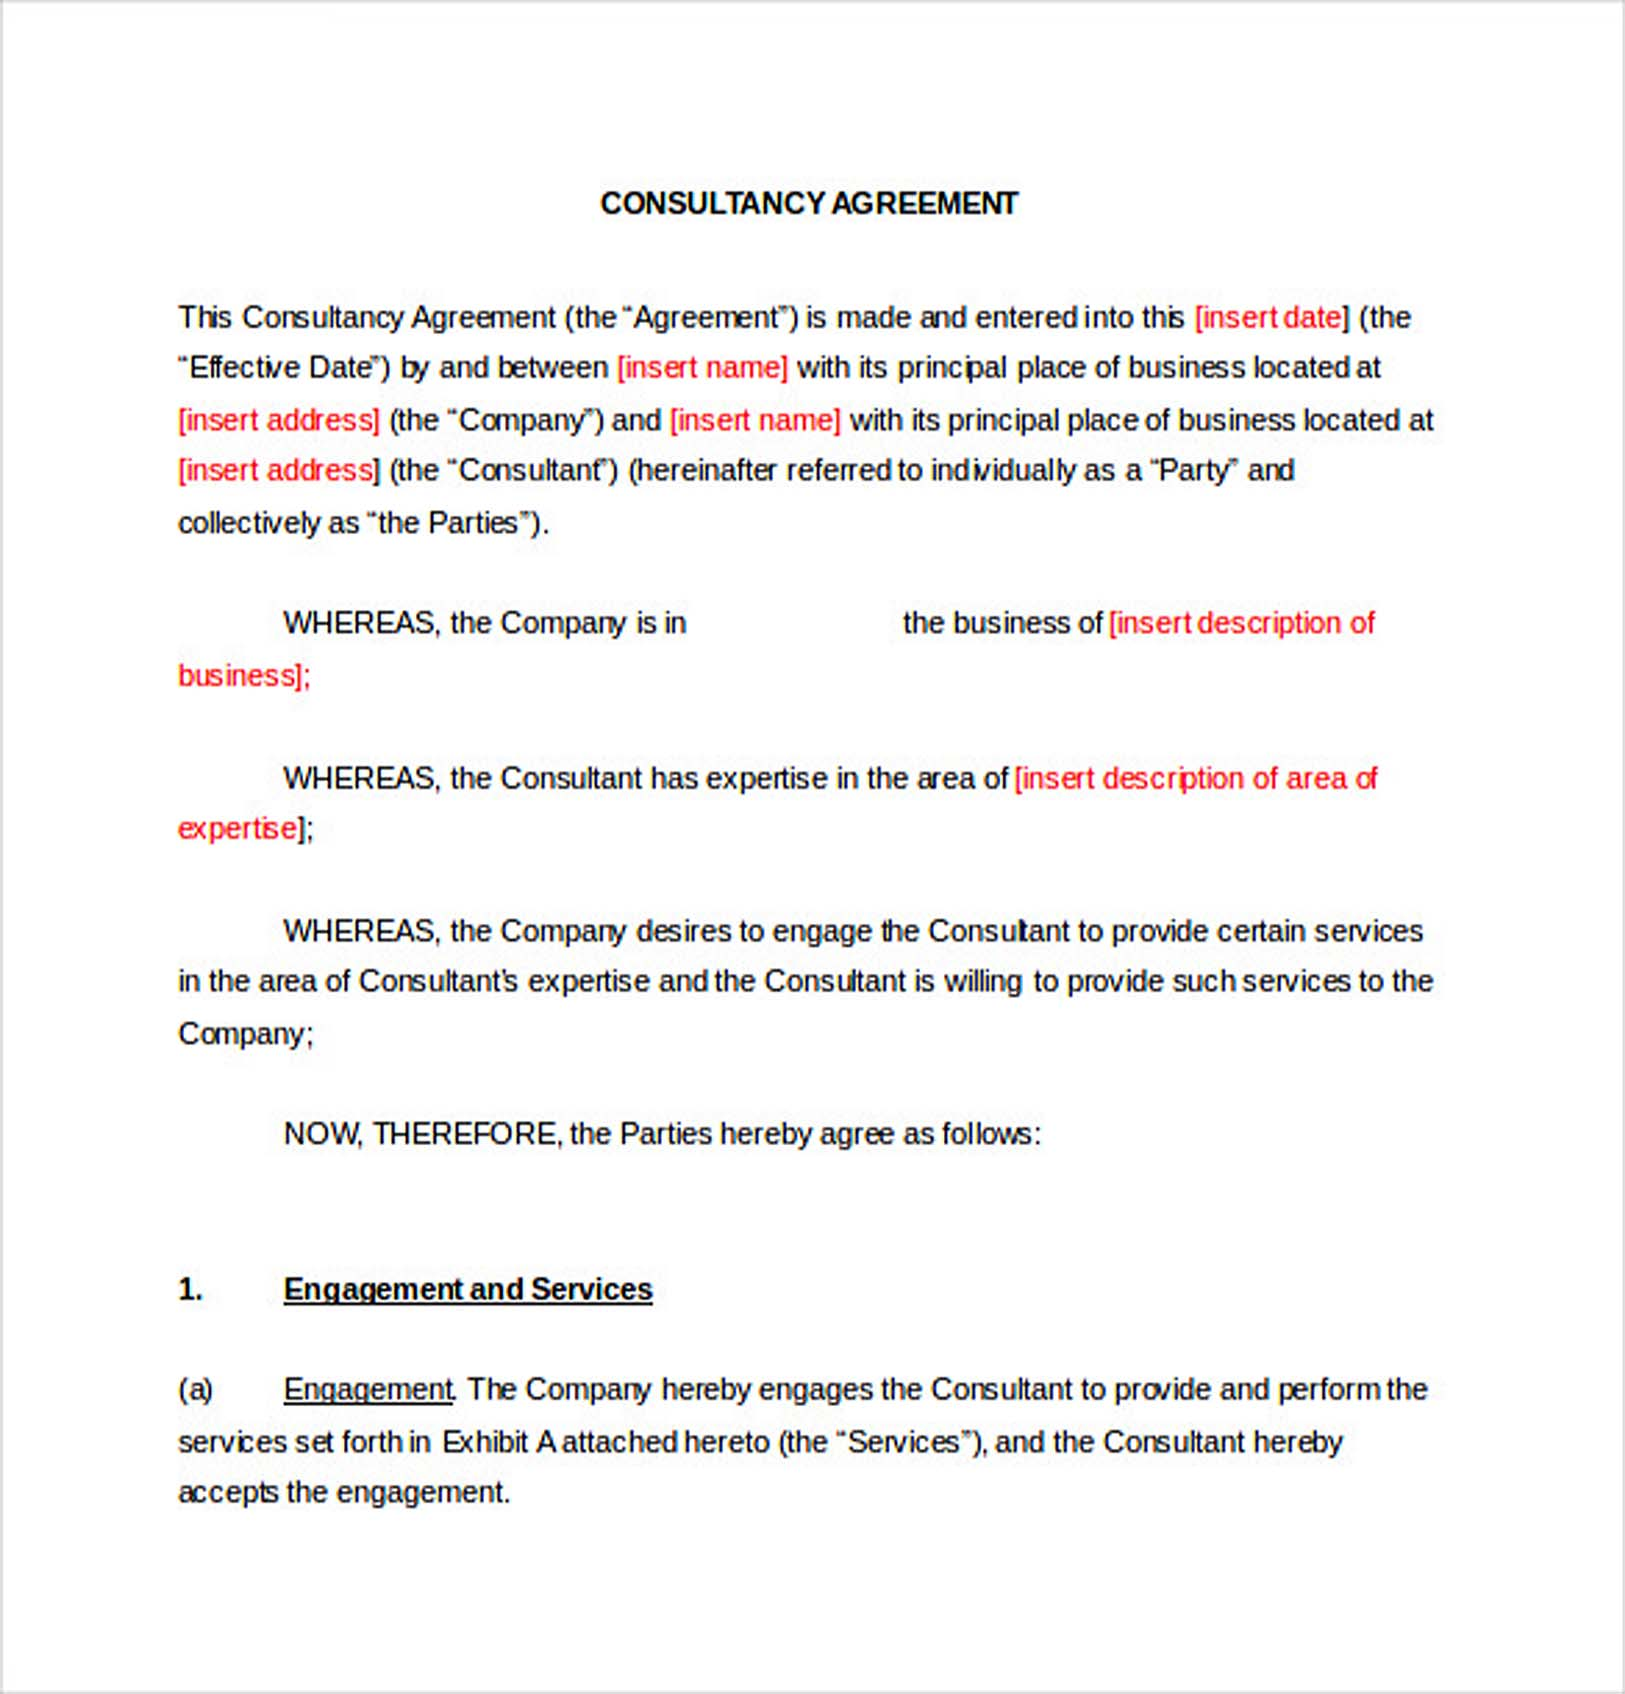 Consultancy Consulting Agreement